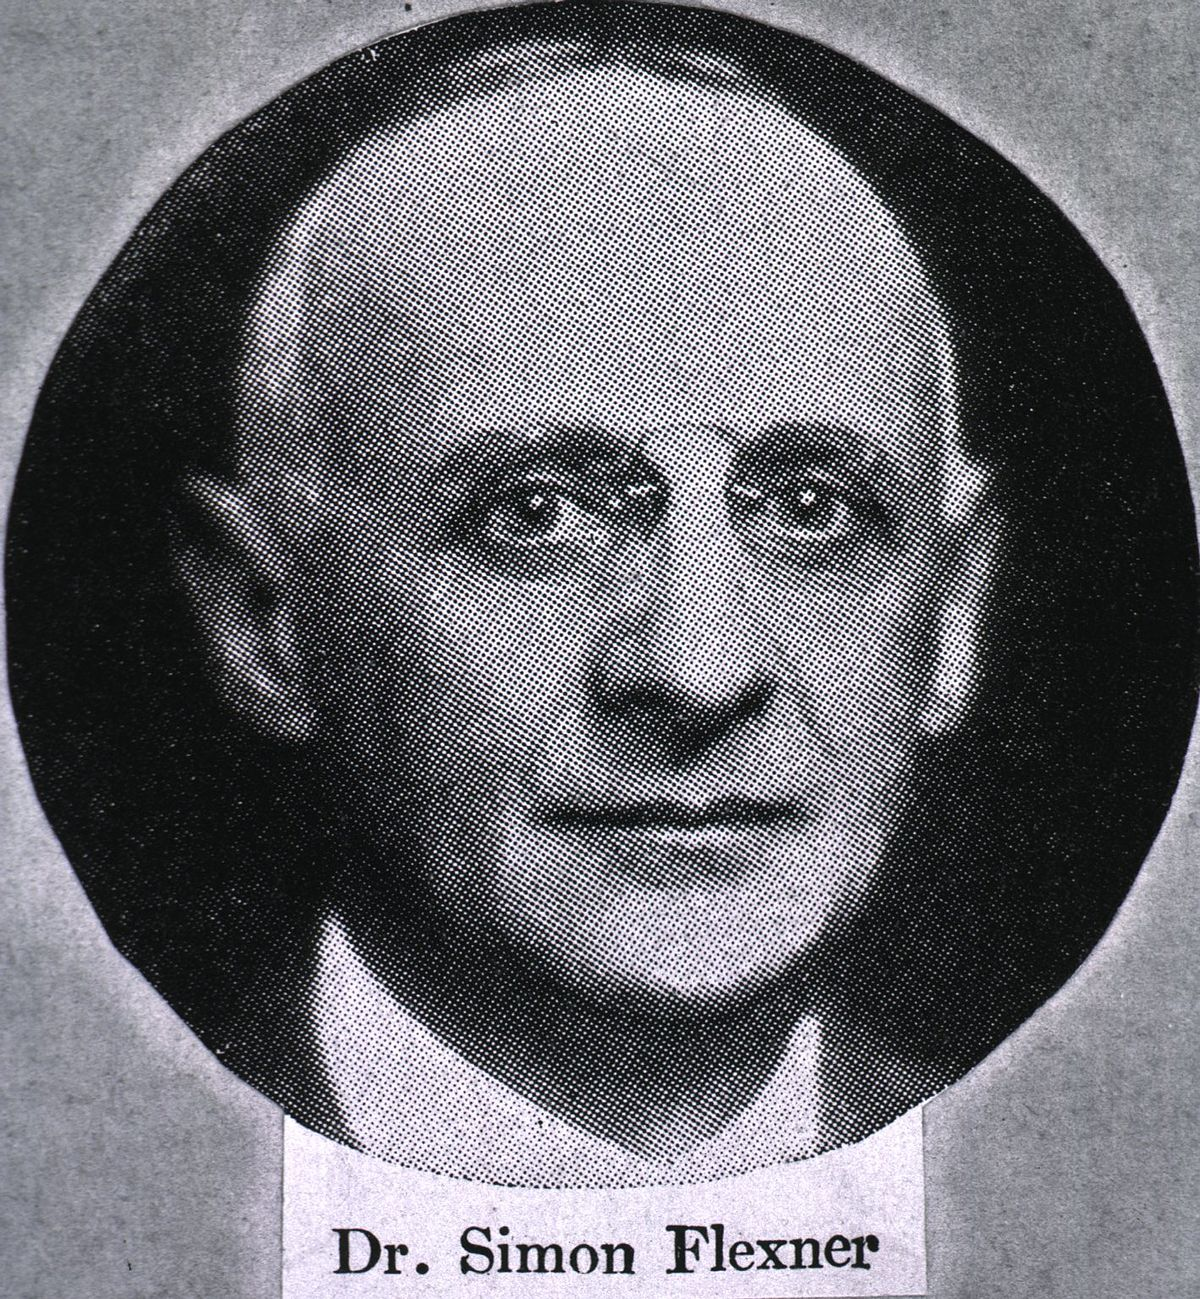 the flexner report The report, plus flexner's vigorous personal efforts for reform, resulted in the closing of about 80% of the then-existent medical schools and the development of high standards for medical training.